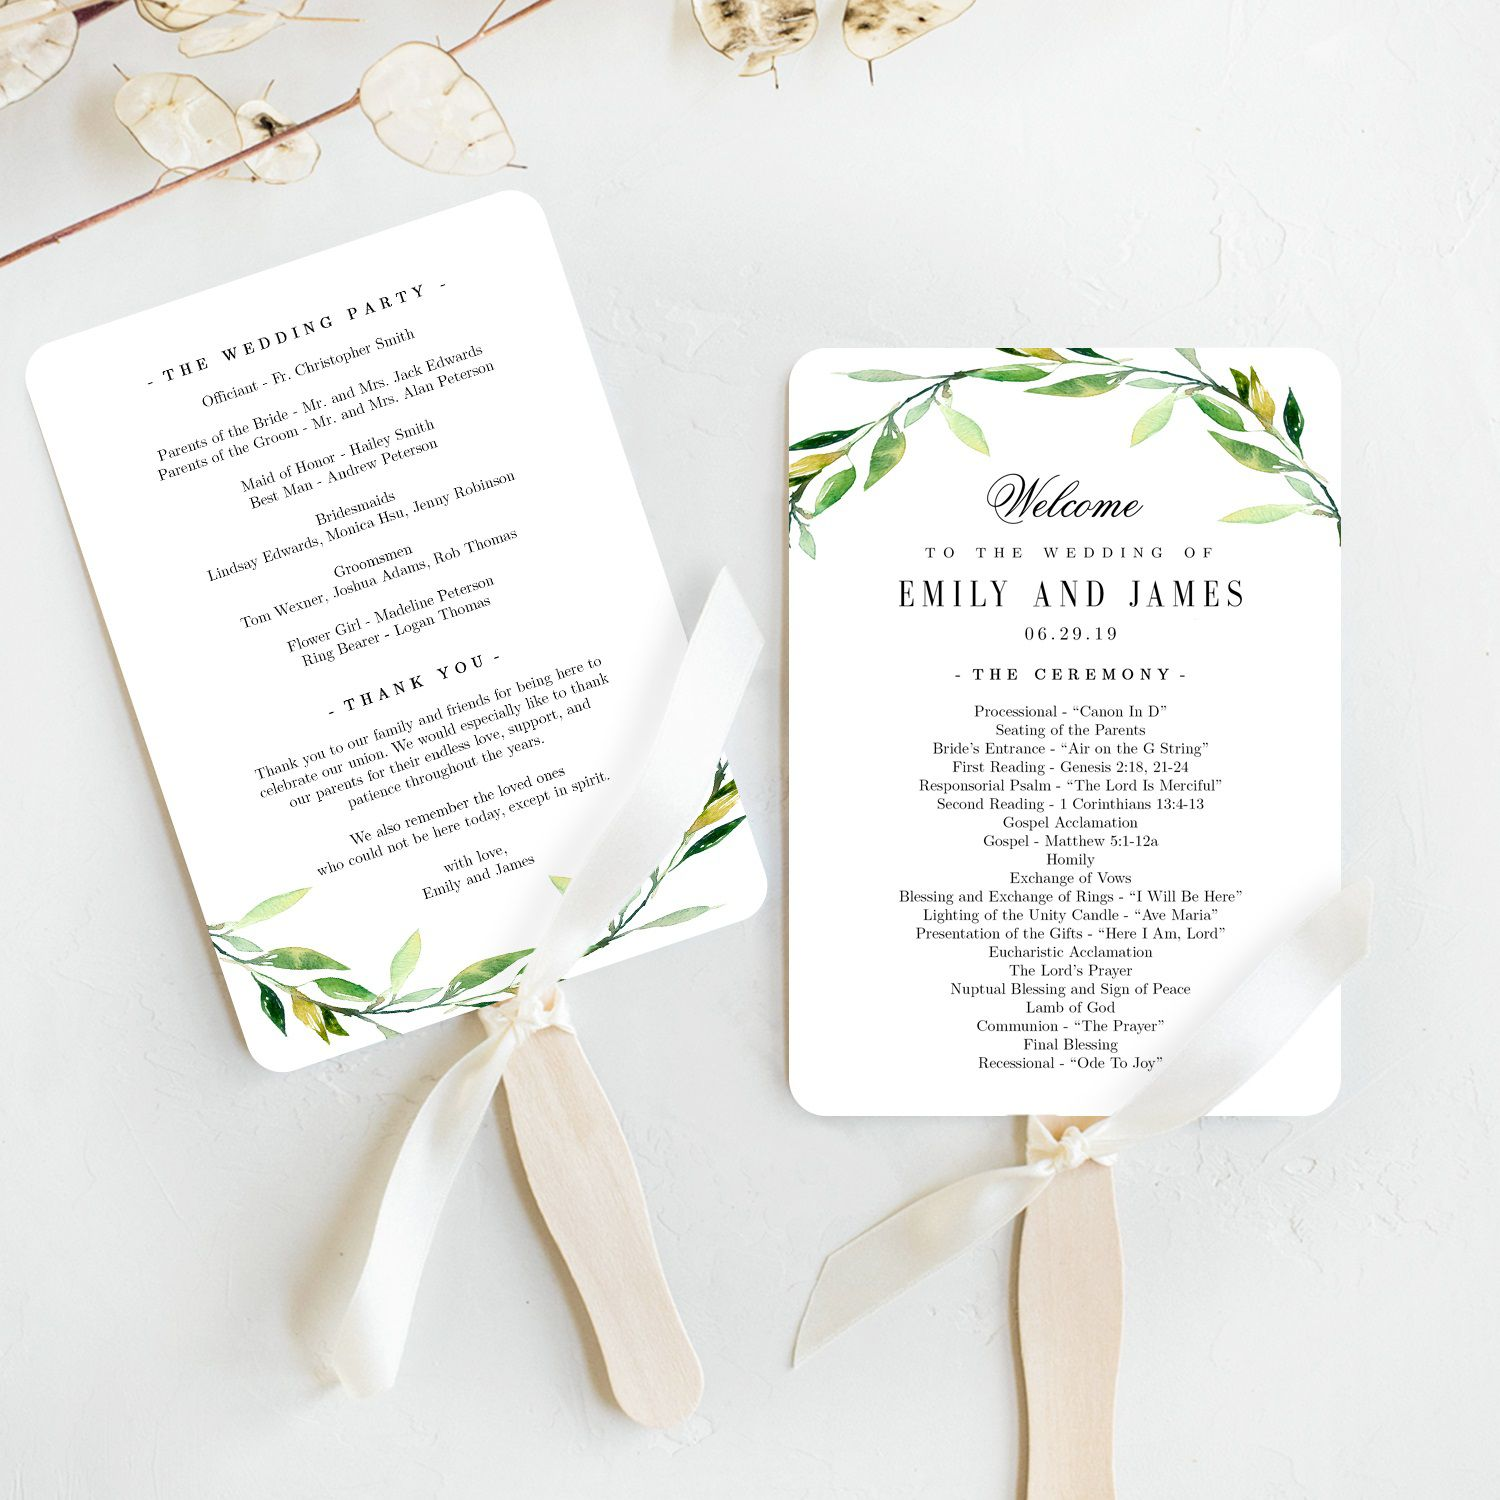 005 Top Wedding Program Fan Template High Resolution  Free Word Paddle Downloadable That Can Be PrintedFull